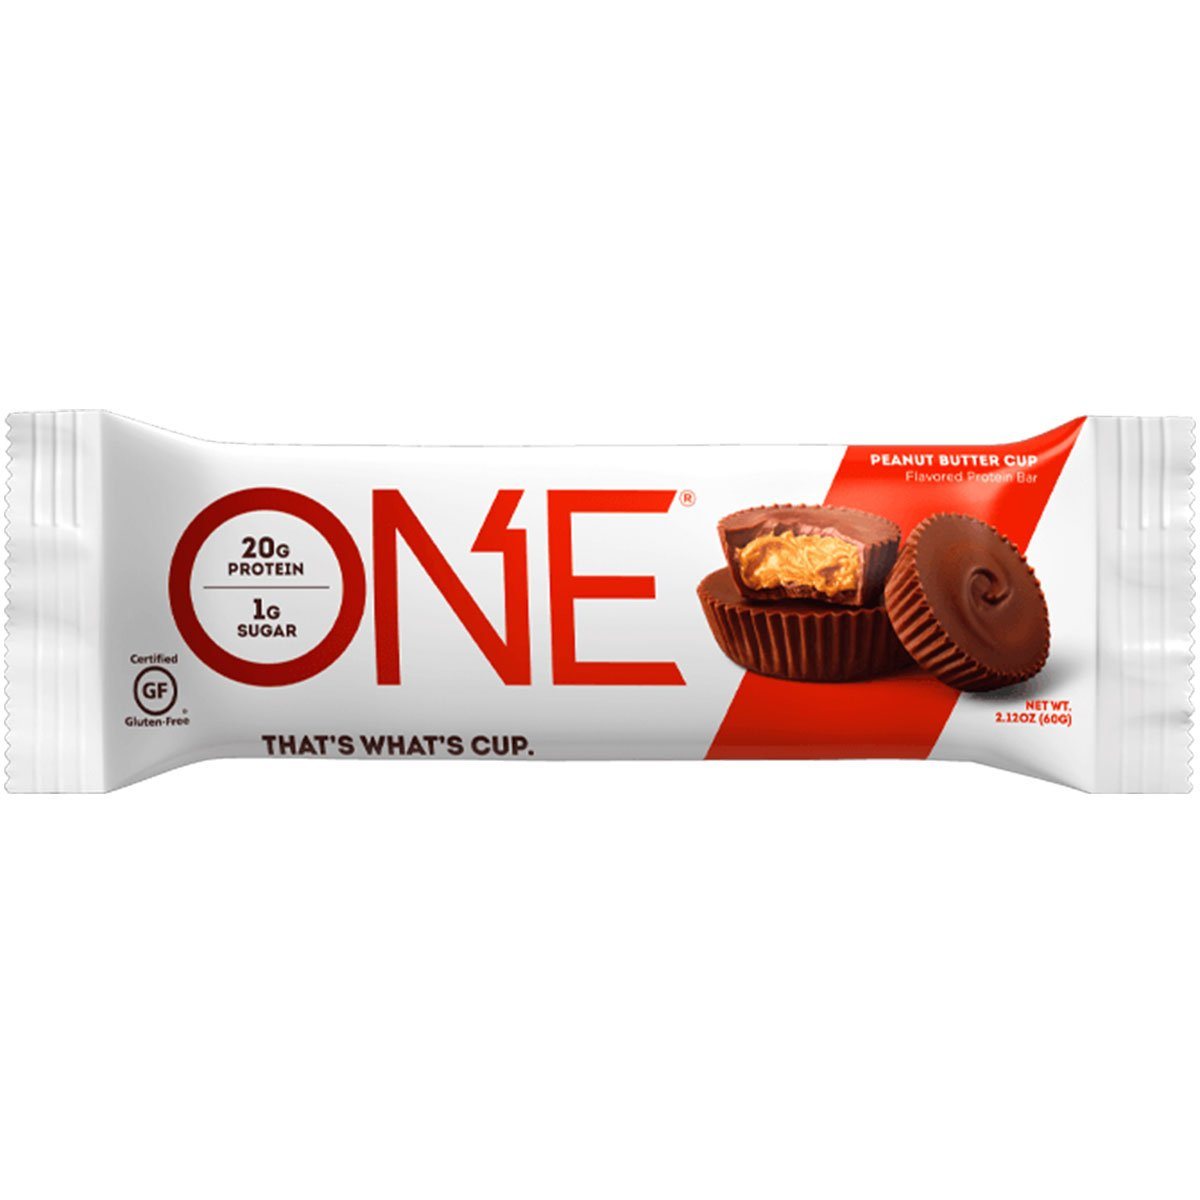 One Protein Bar Chocolate Peanut Butter